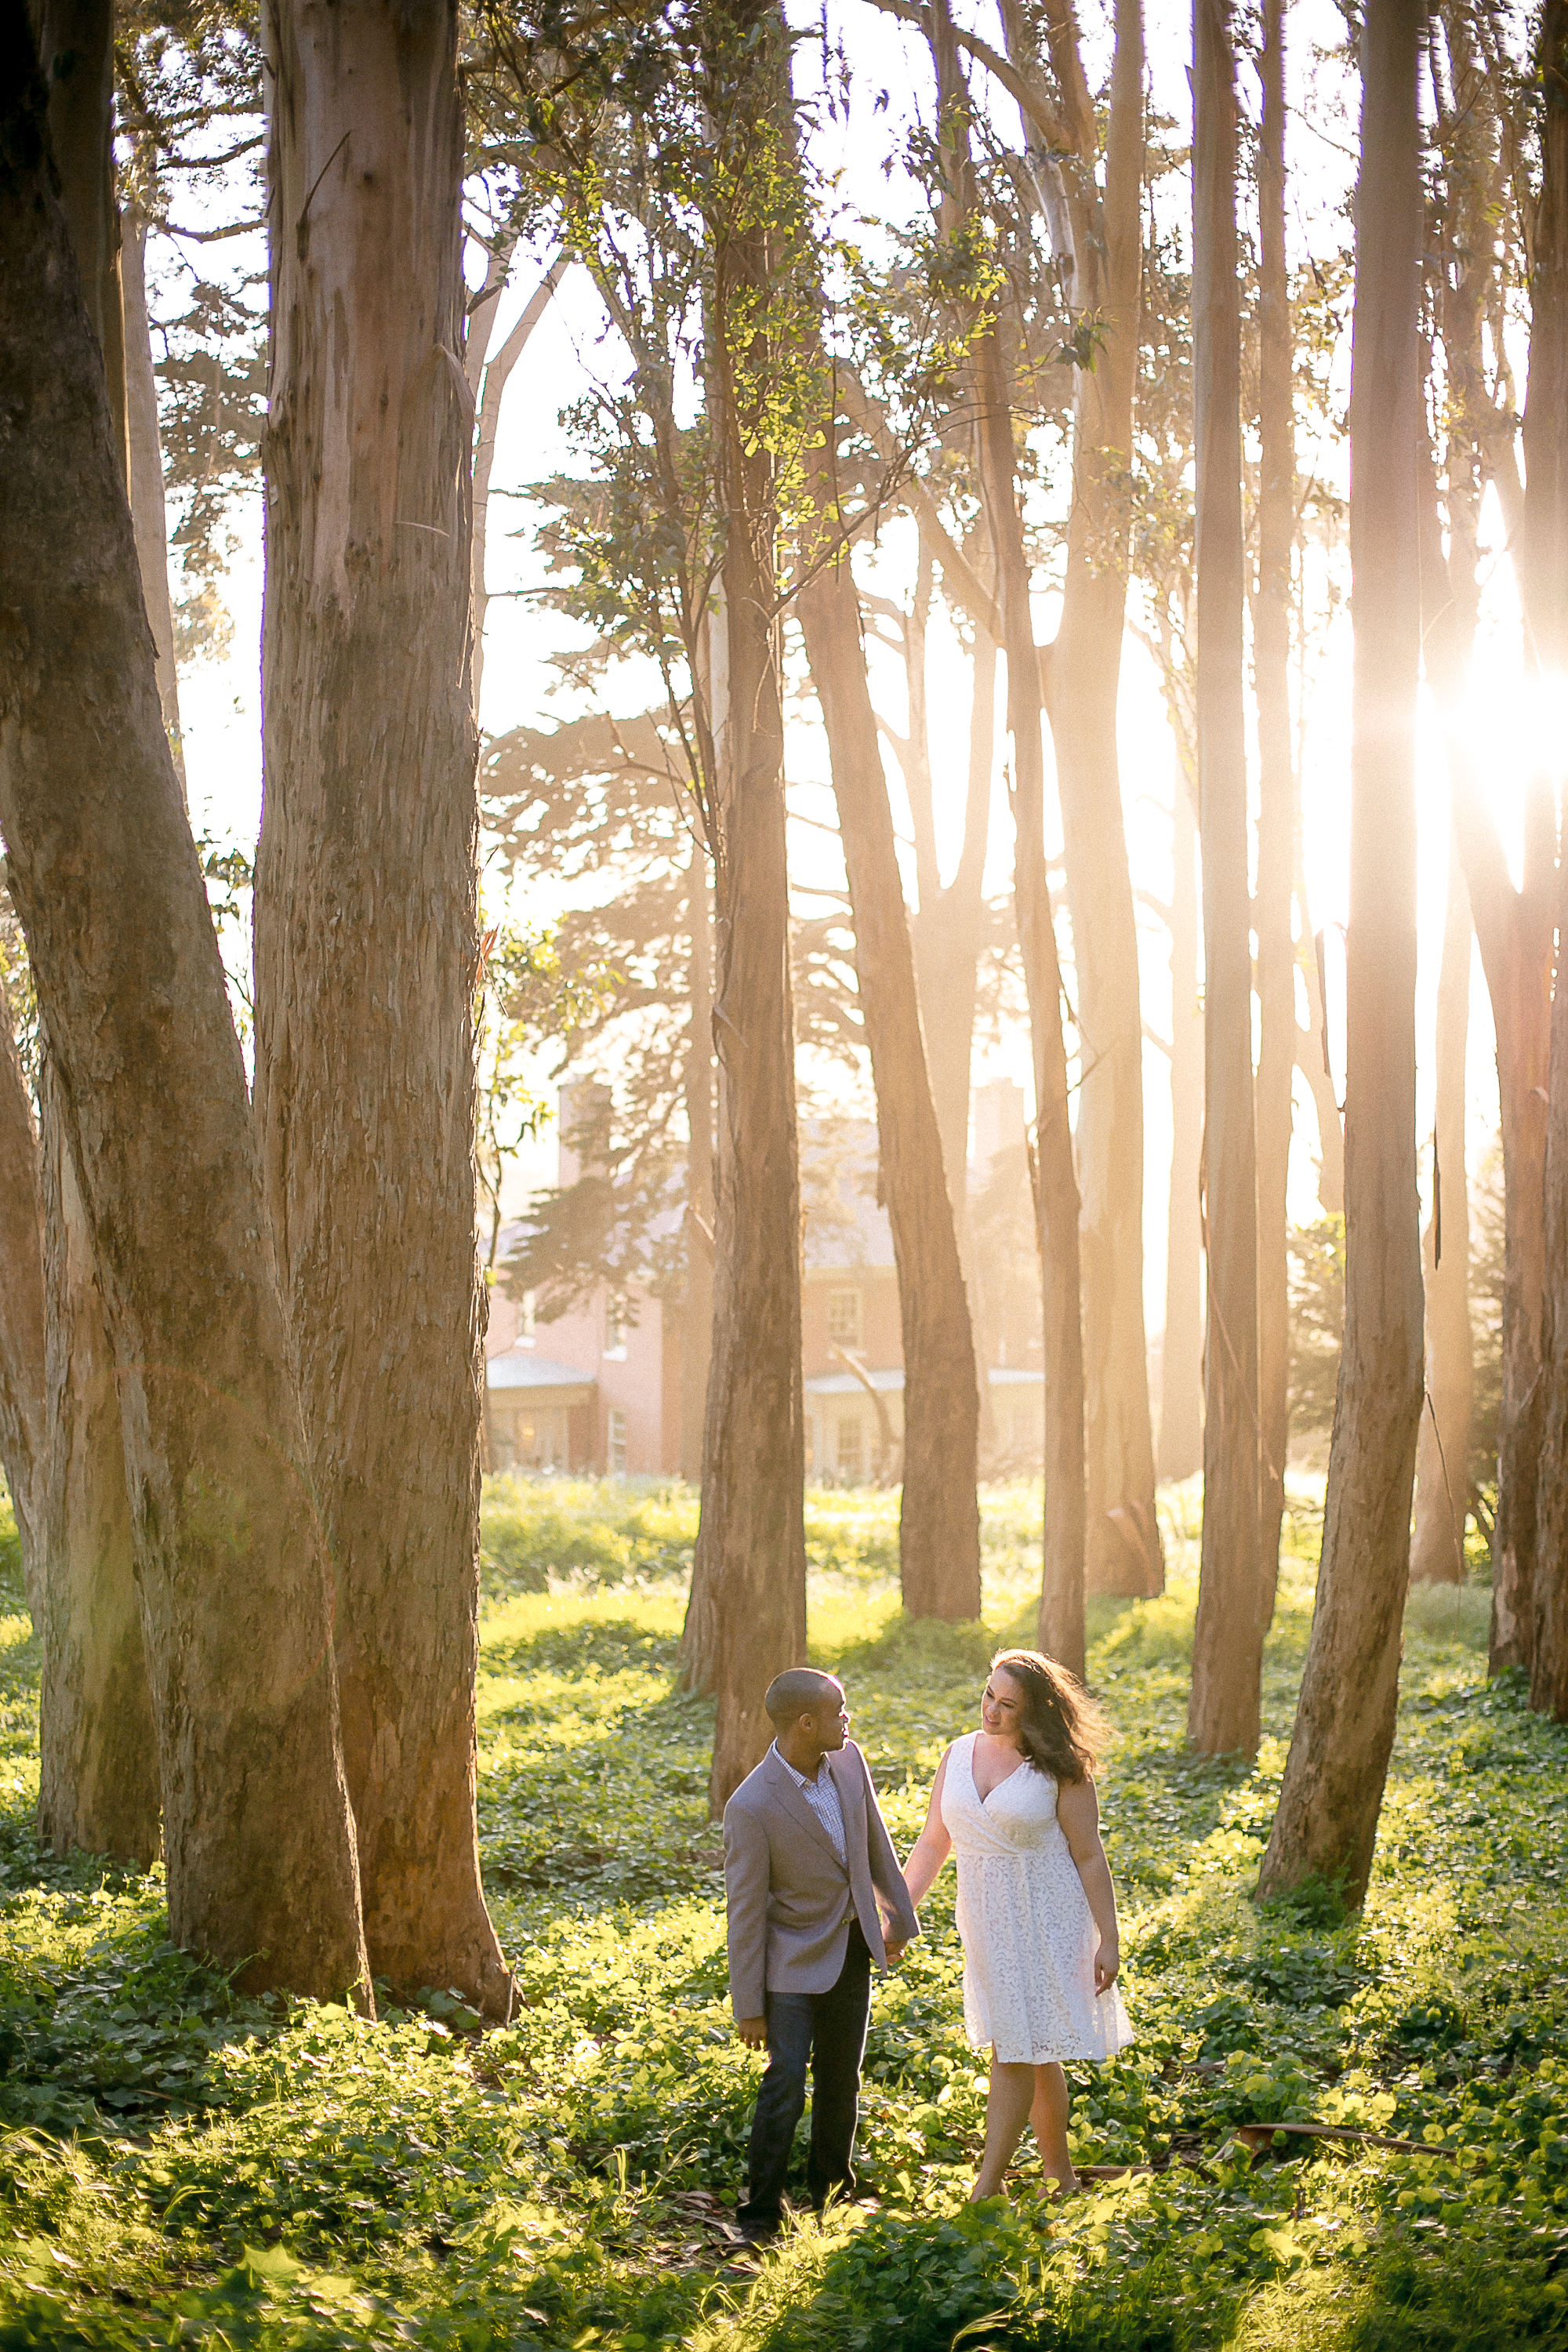 San_Francisco_Engagement_Session_013.jpg